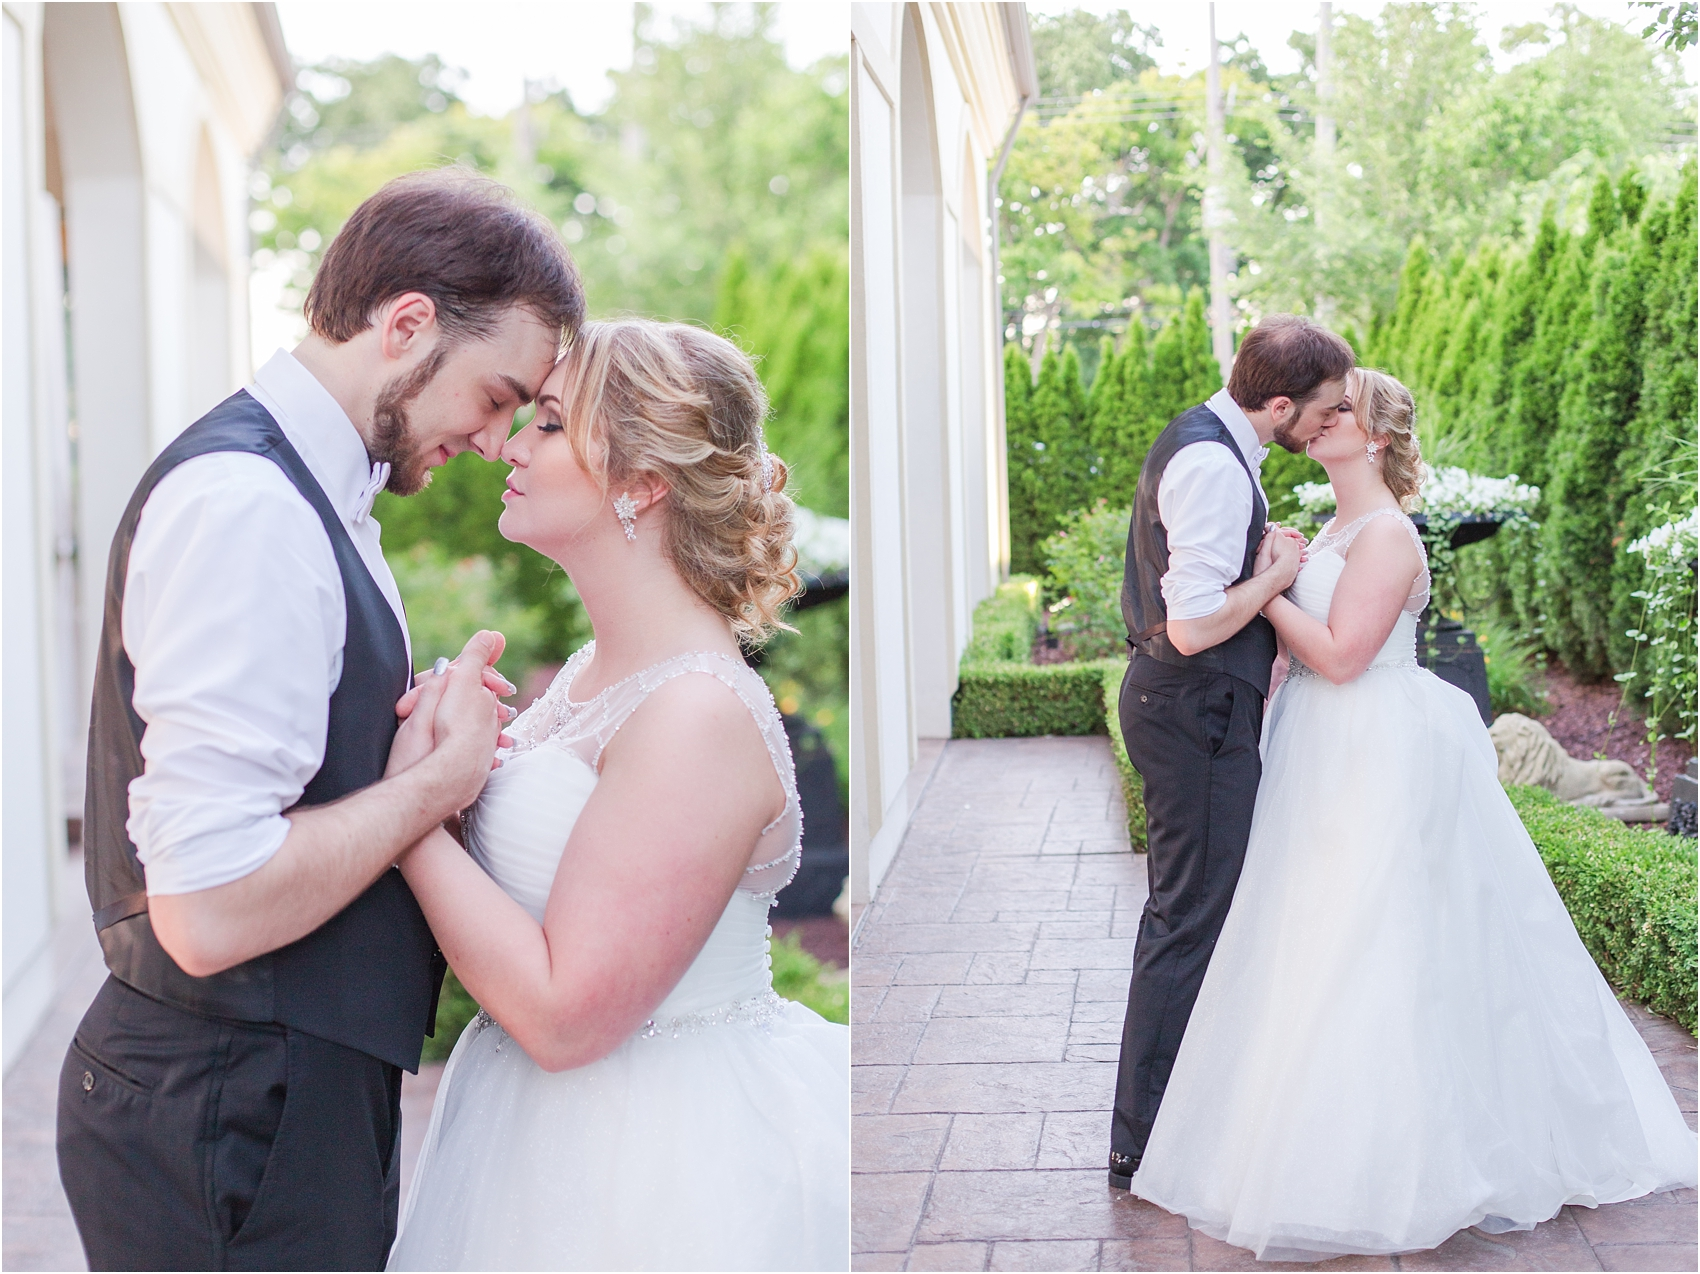 lord-of-the-rings-inspired-wedding-photos-at-crystal-gardens-in-howell-mi-by-courtney-carolyn-photography_0129.jpg